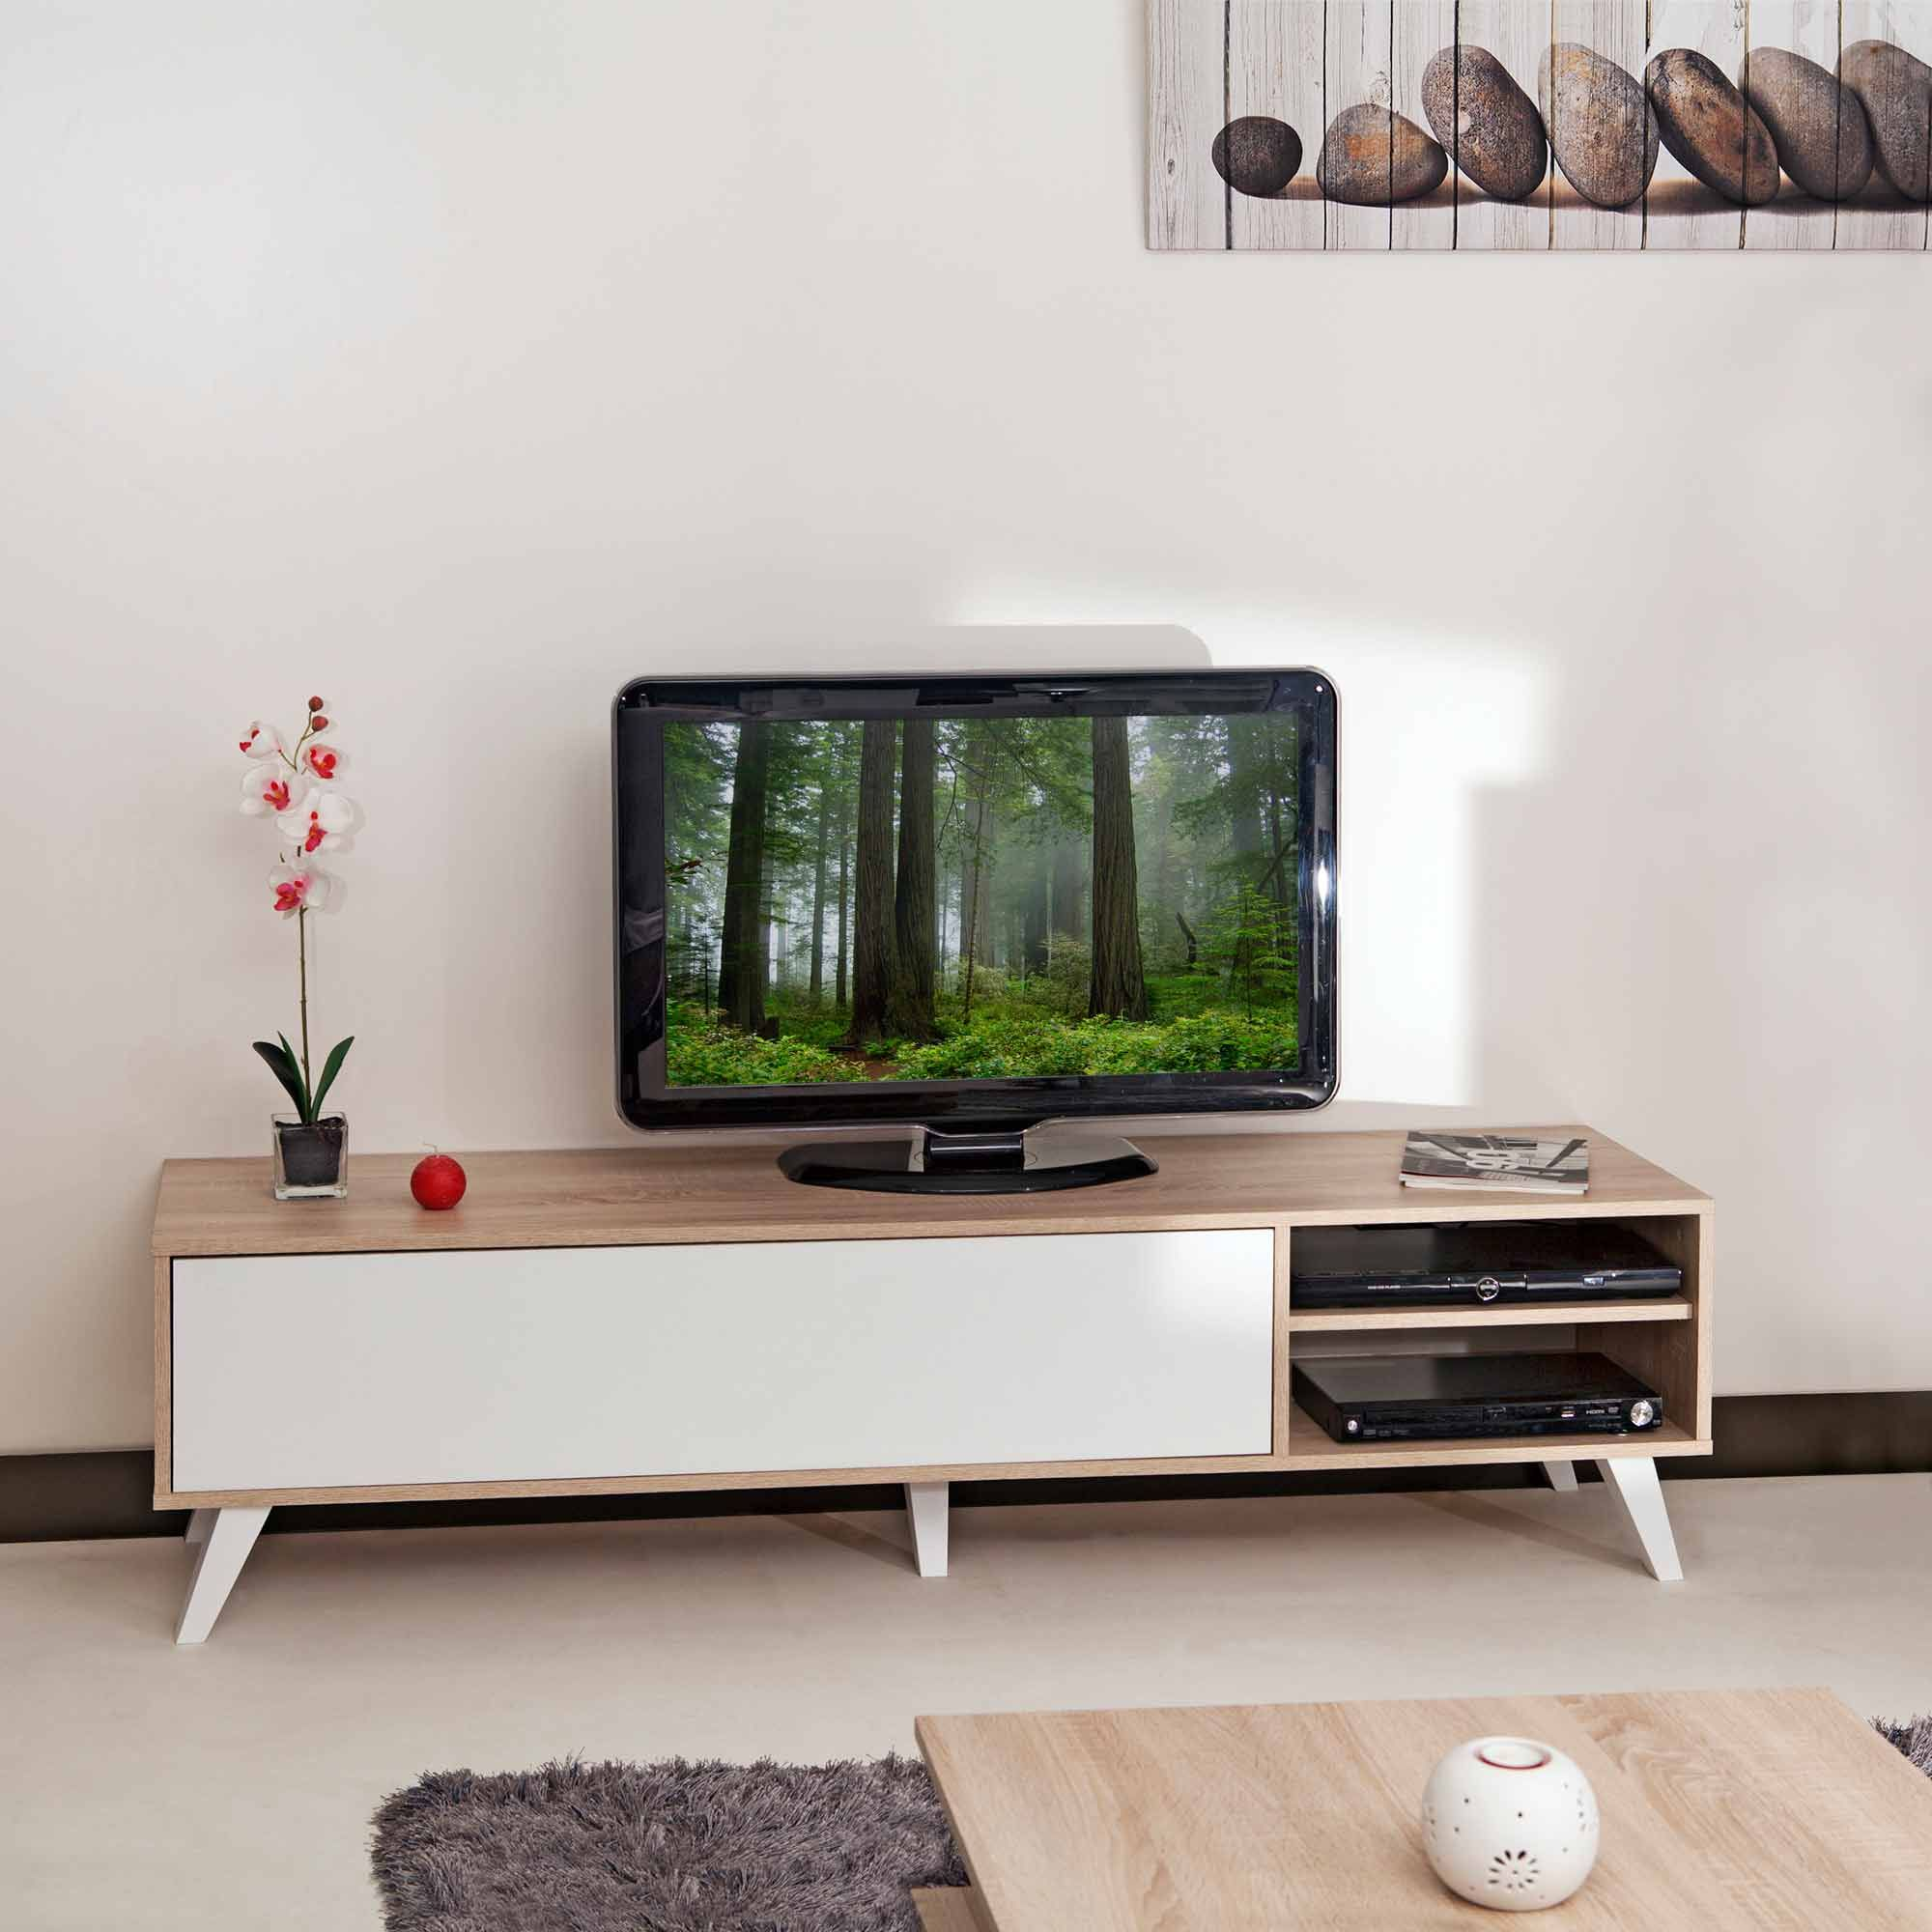 Meuble Tv Living Meuble Tv Rétro Bas Furniture 1950s Home Decor Living Room